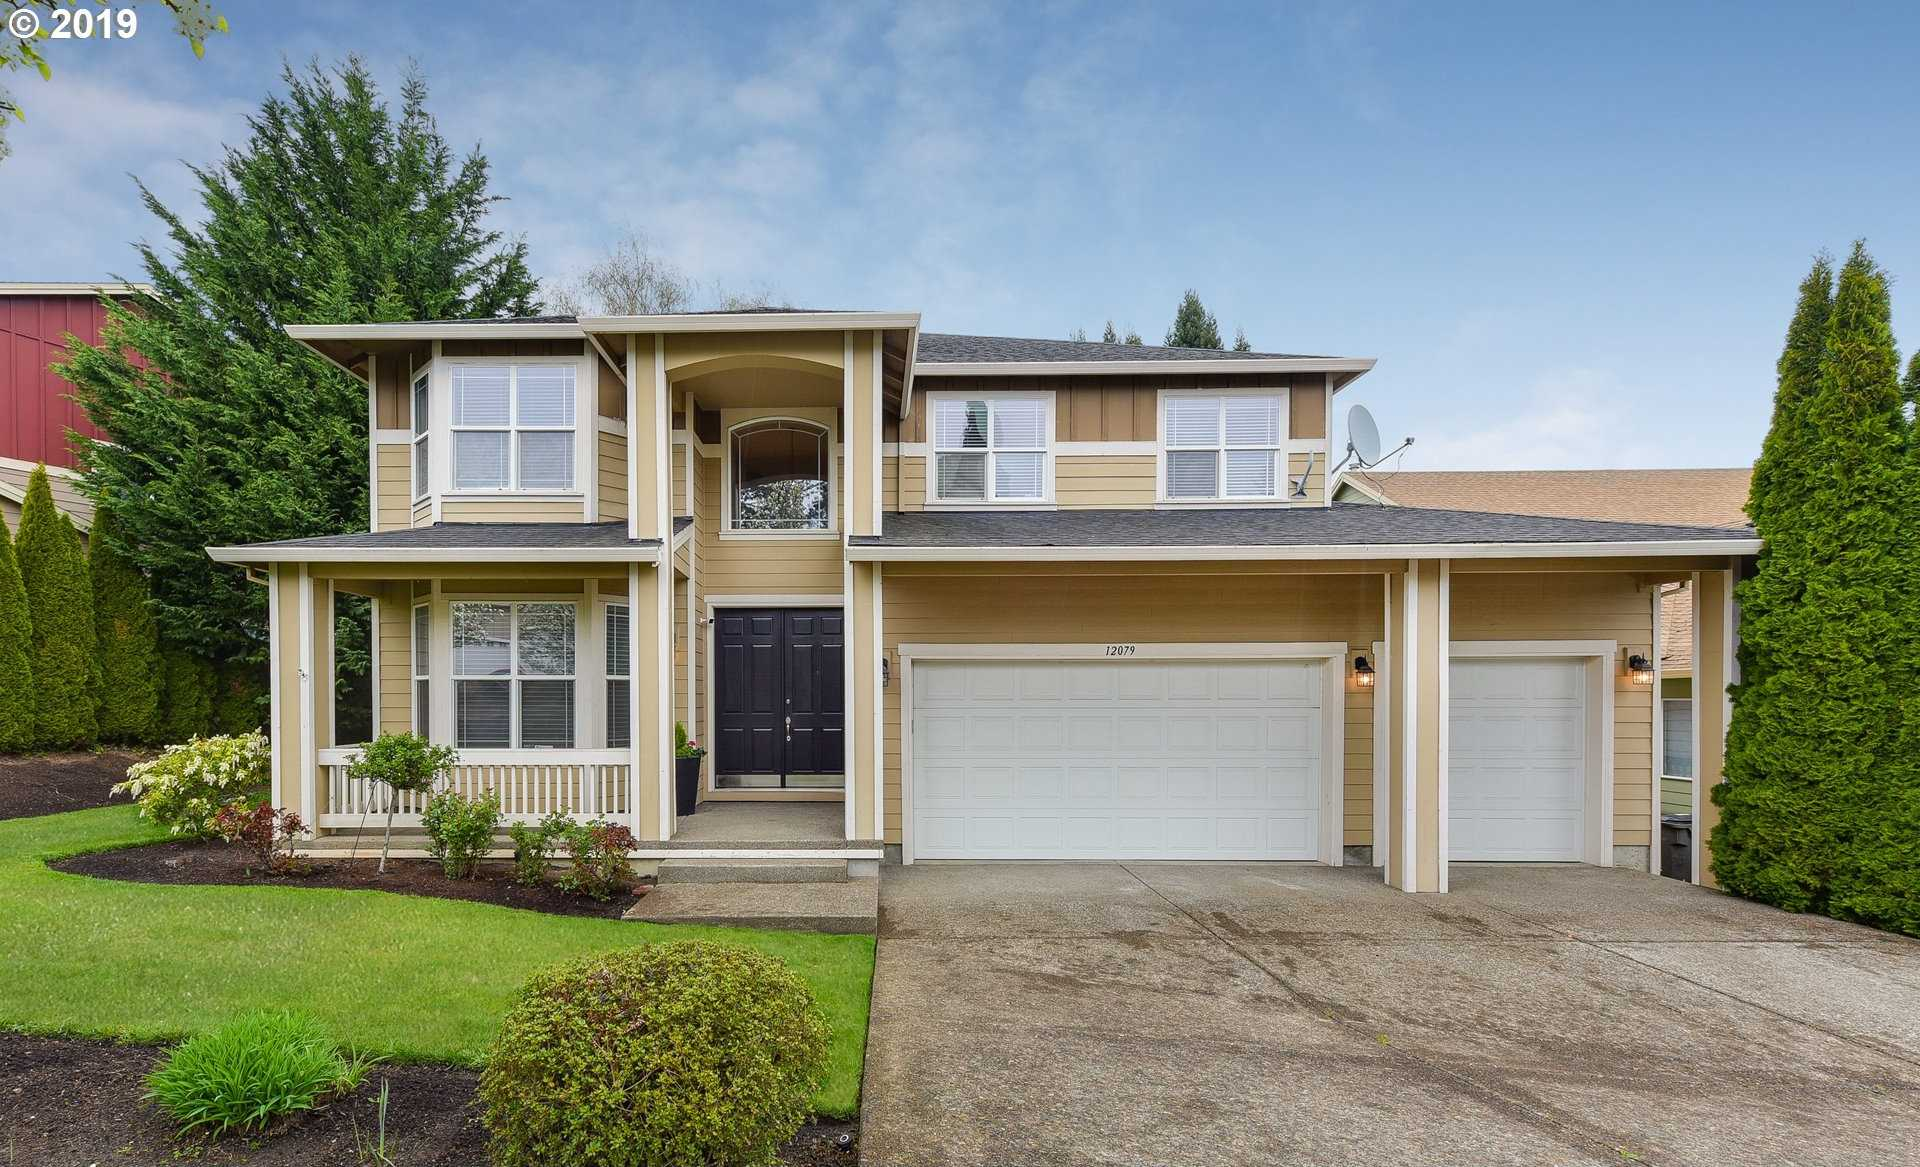 $691,000 - 6Br/4Ba -  for Sale in Tigard